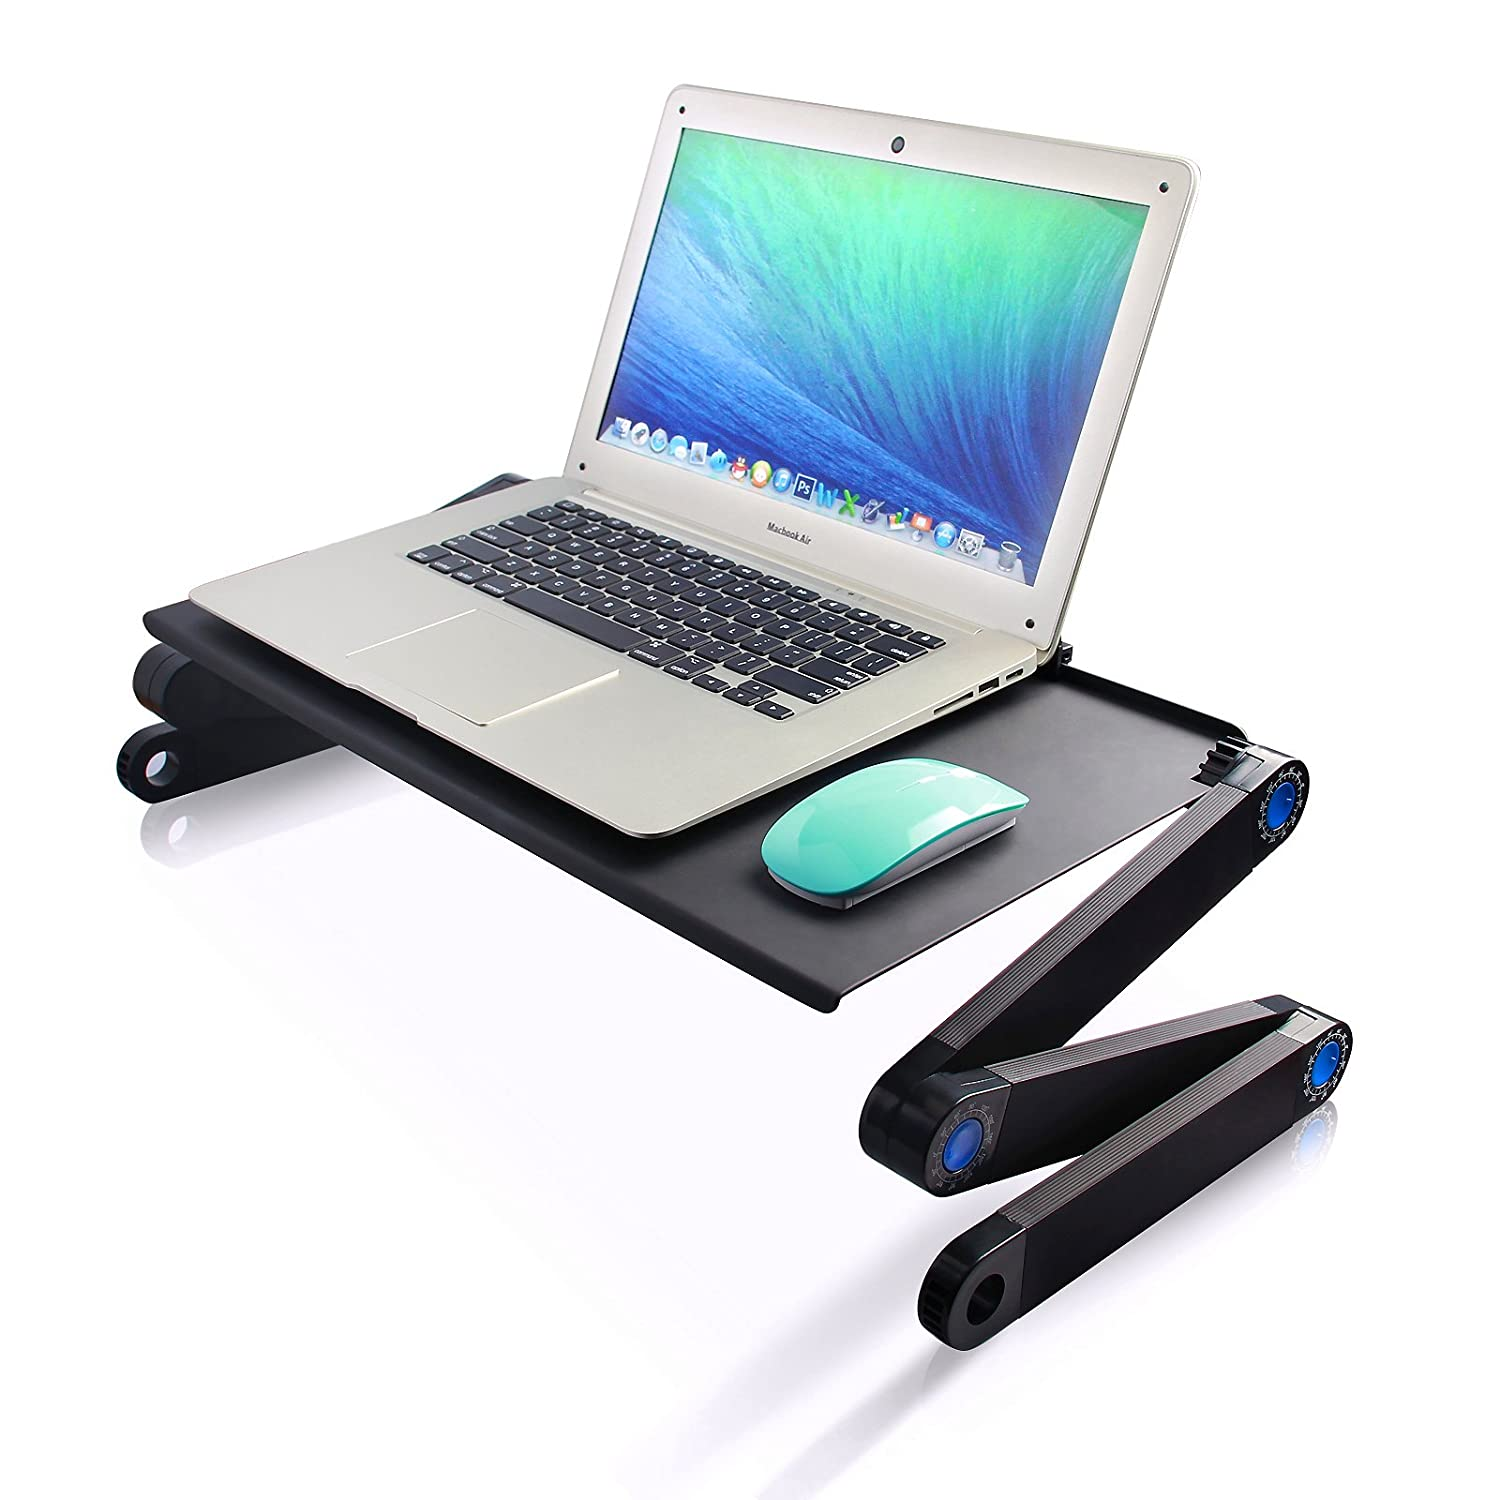 Tree.NB Portable Adjustable Aluminum Laptop Desk/Stand/Table Vented w/CPU Fans Mouse Pad Side Mount-Notebook-Macbook-Light Weight Ergonomic TV Bed Lap Tray Stand Up/Sitting-Black